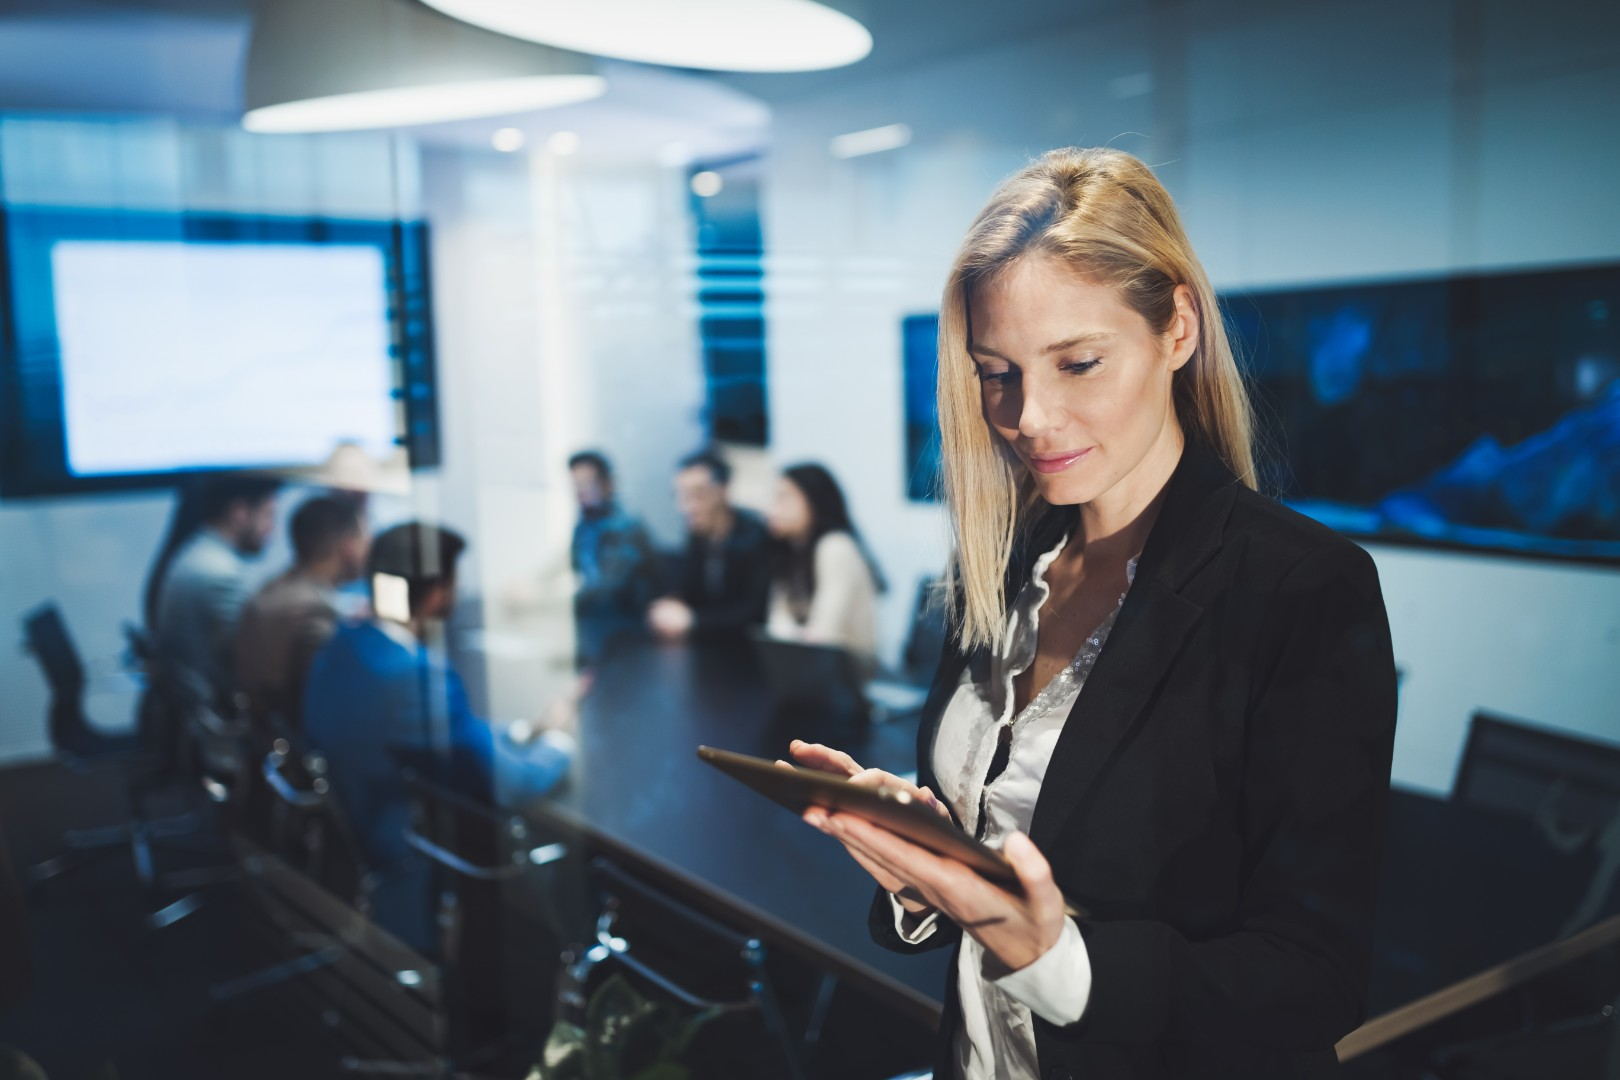 business-woman-holding-a-tablet-in-conference-4MXQG7Z